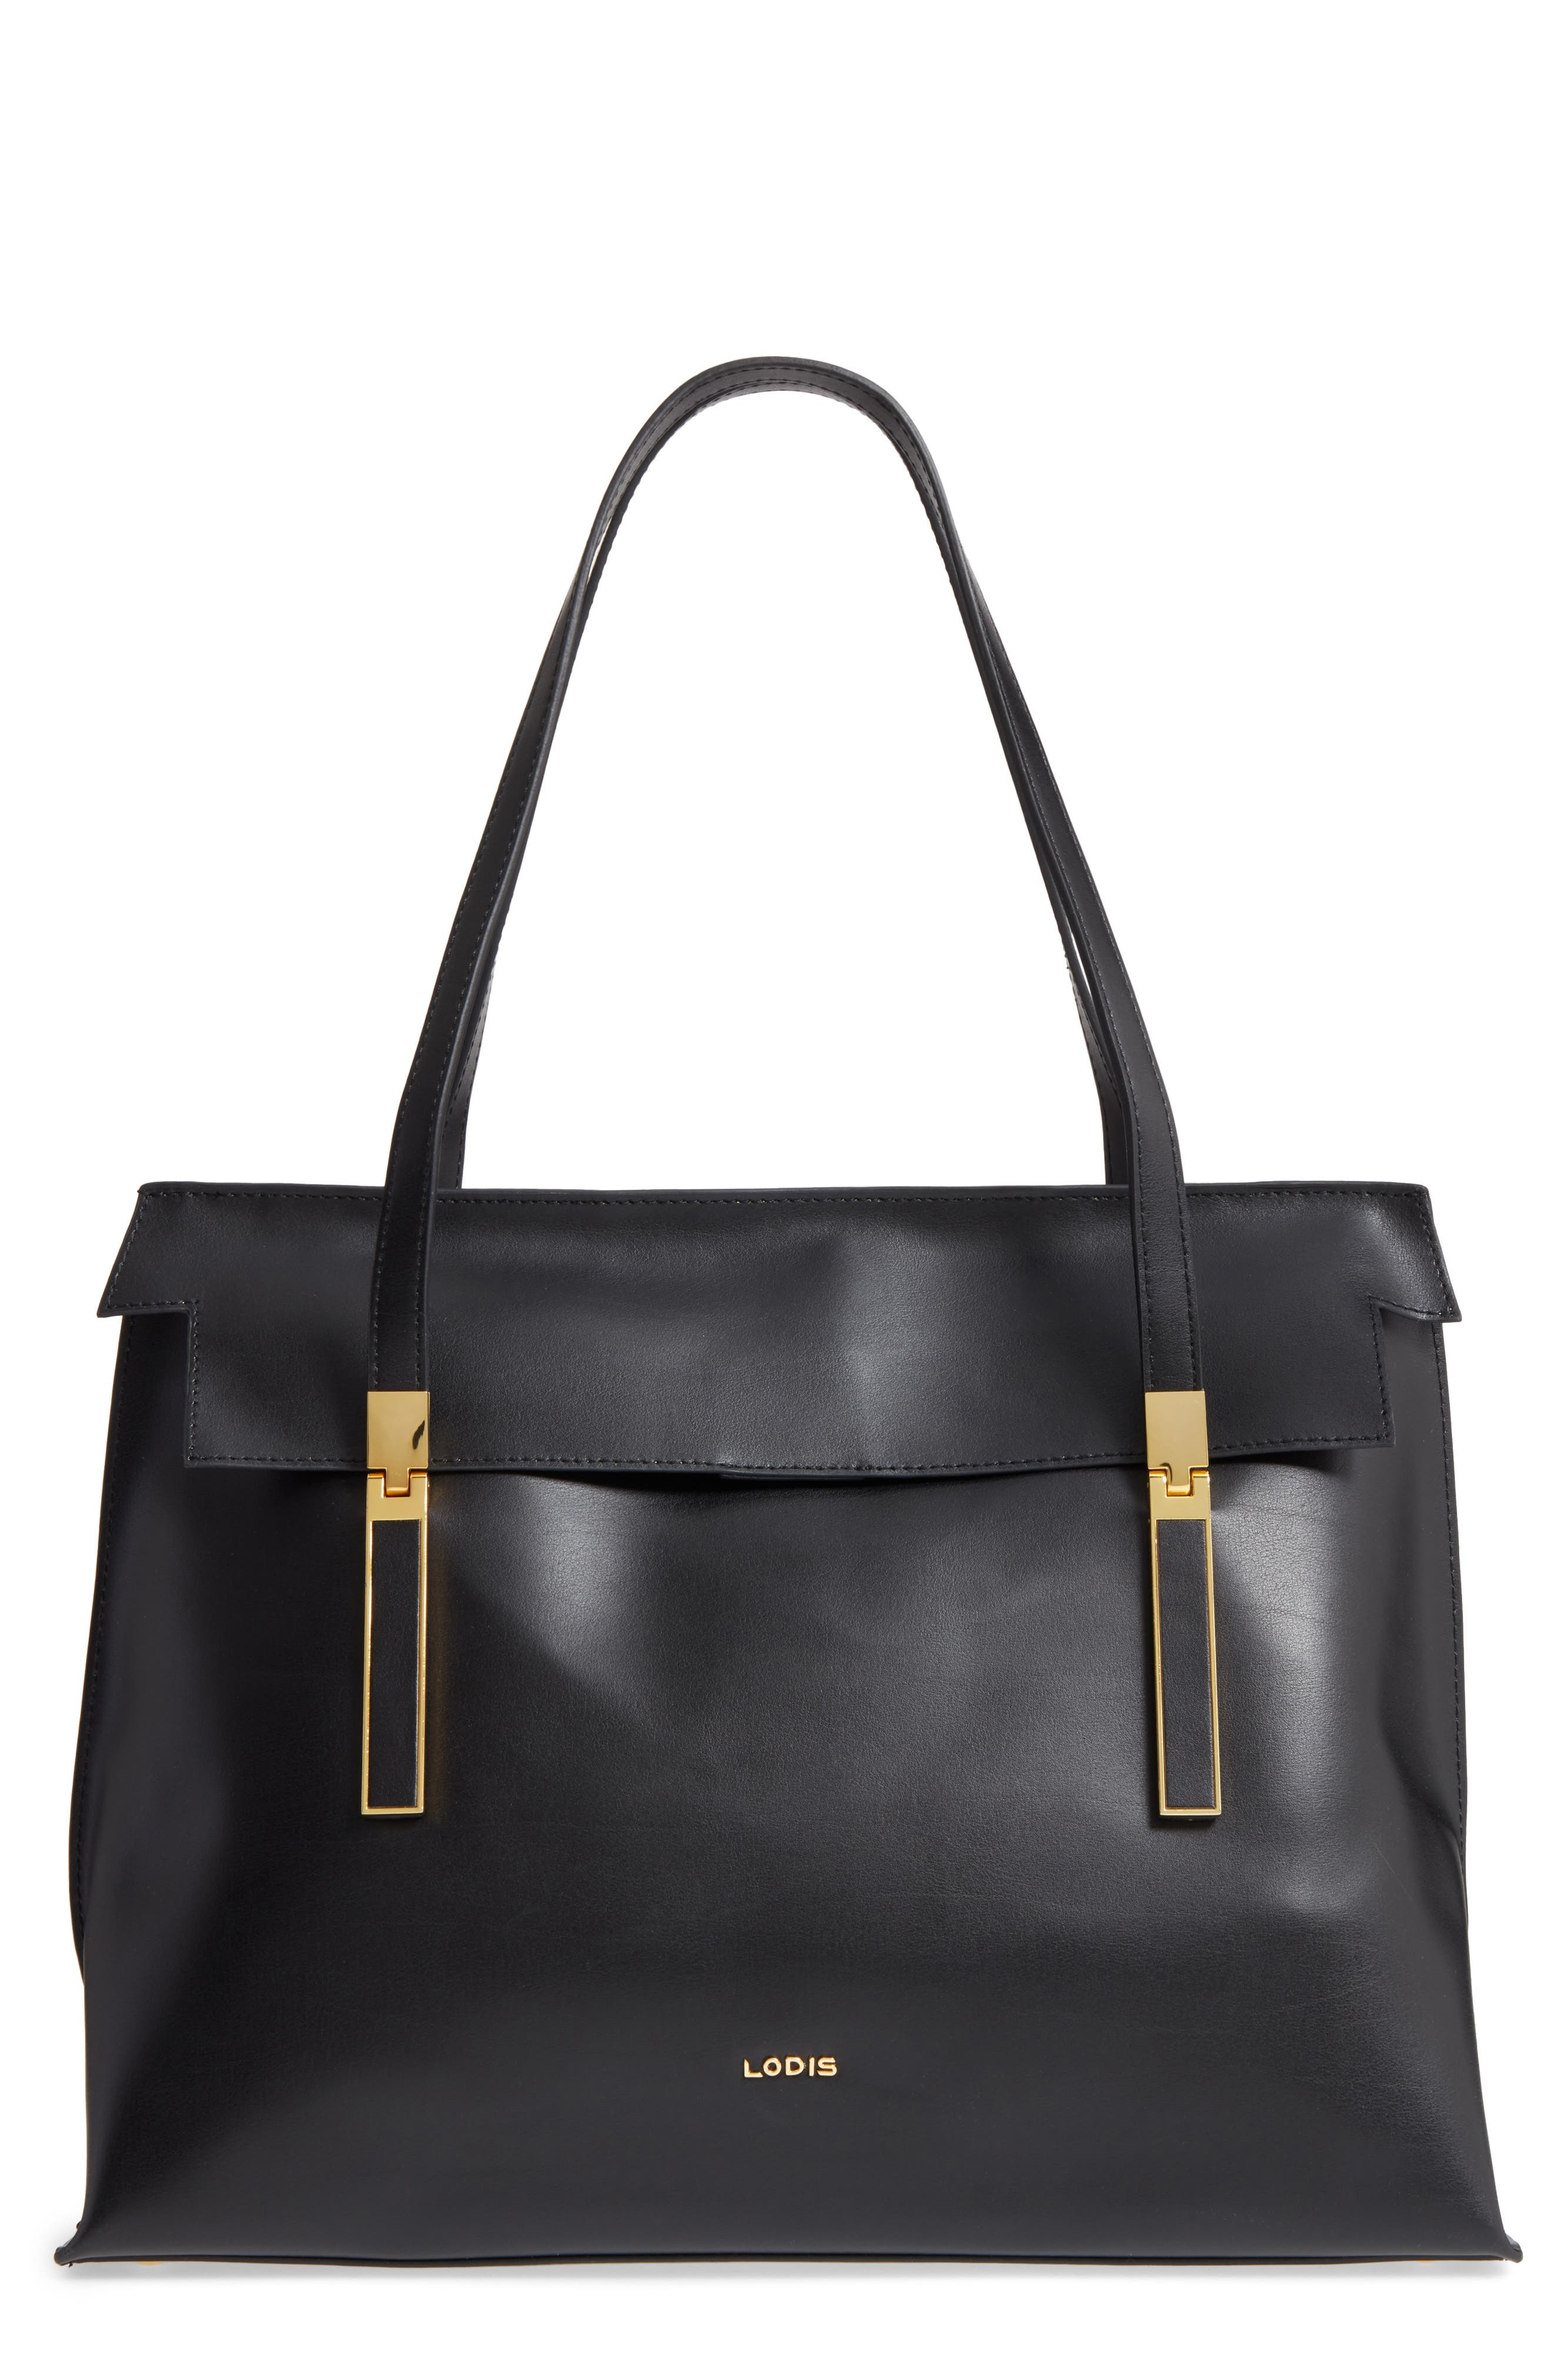 LODIS Silicon Valley - Lorrain RFID Leather Satchel,                         Main,                         color,